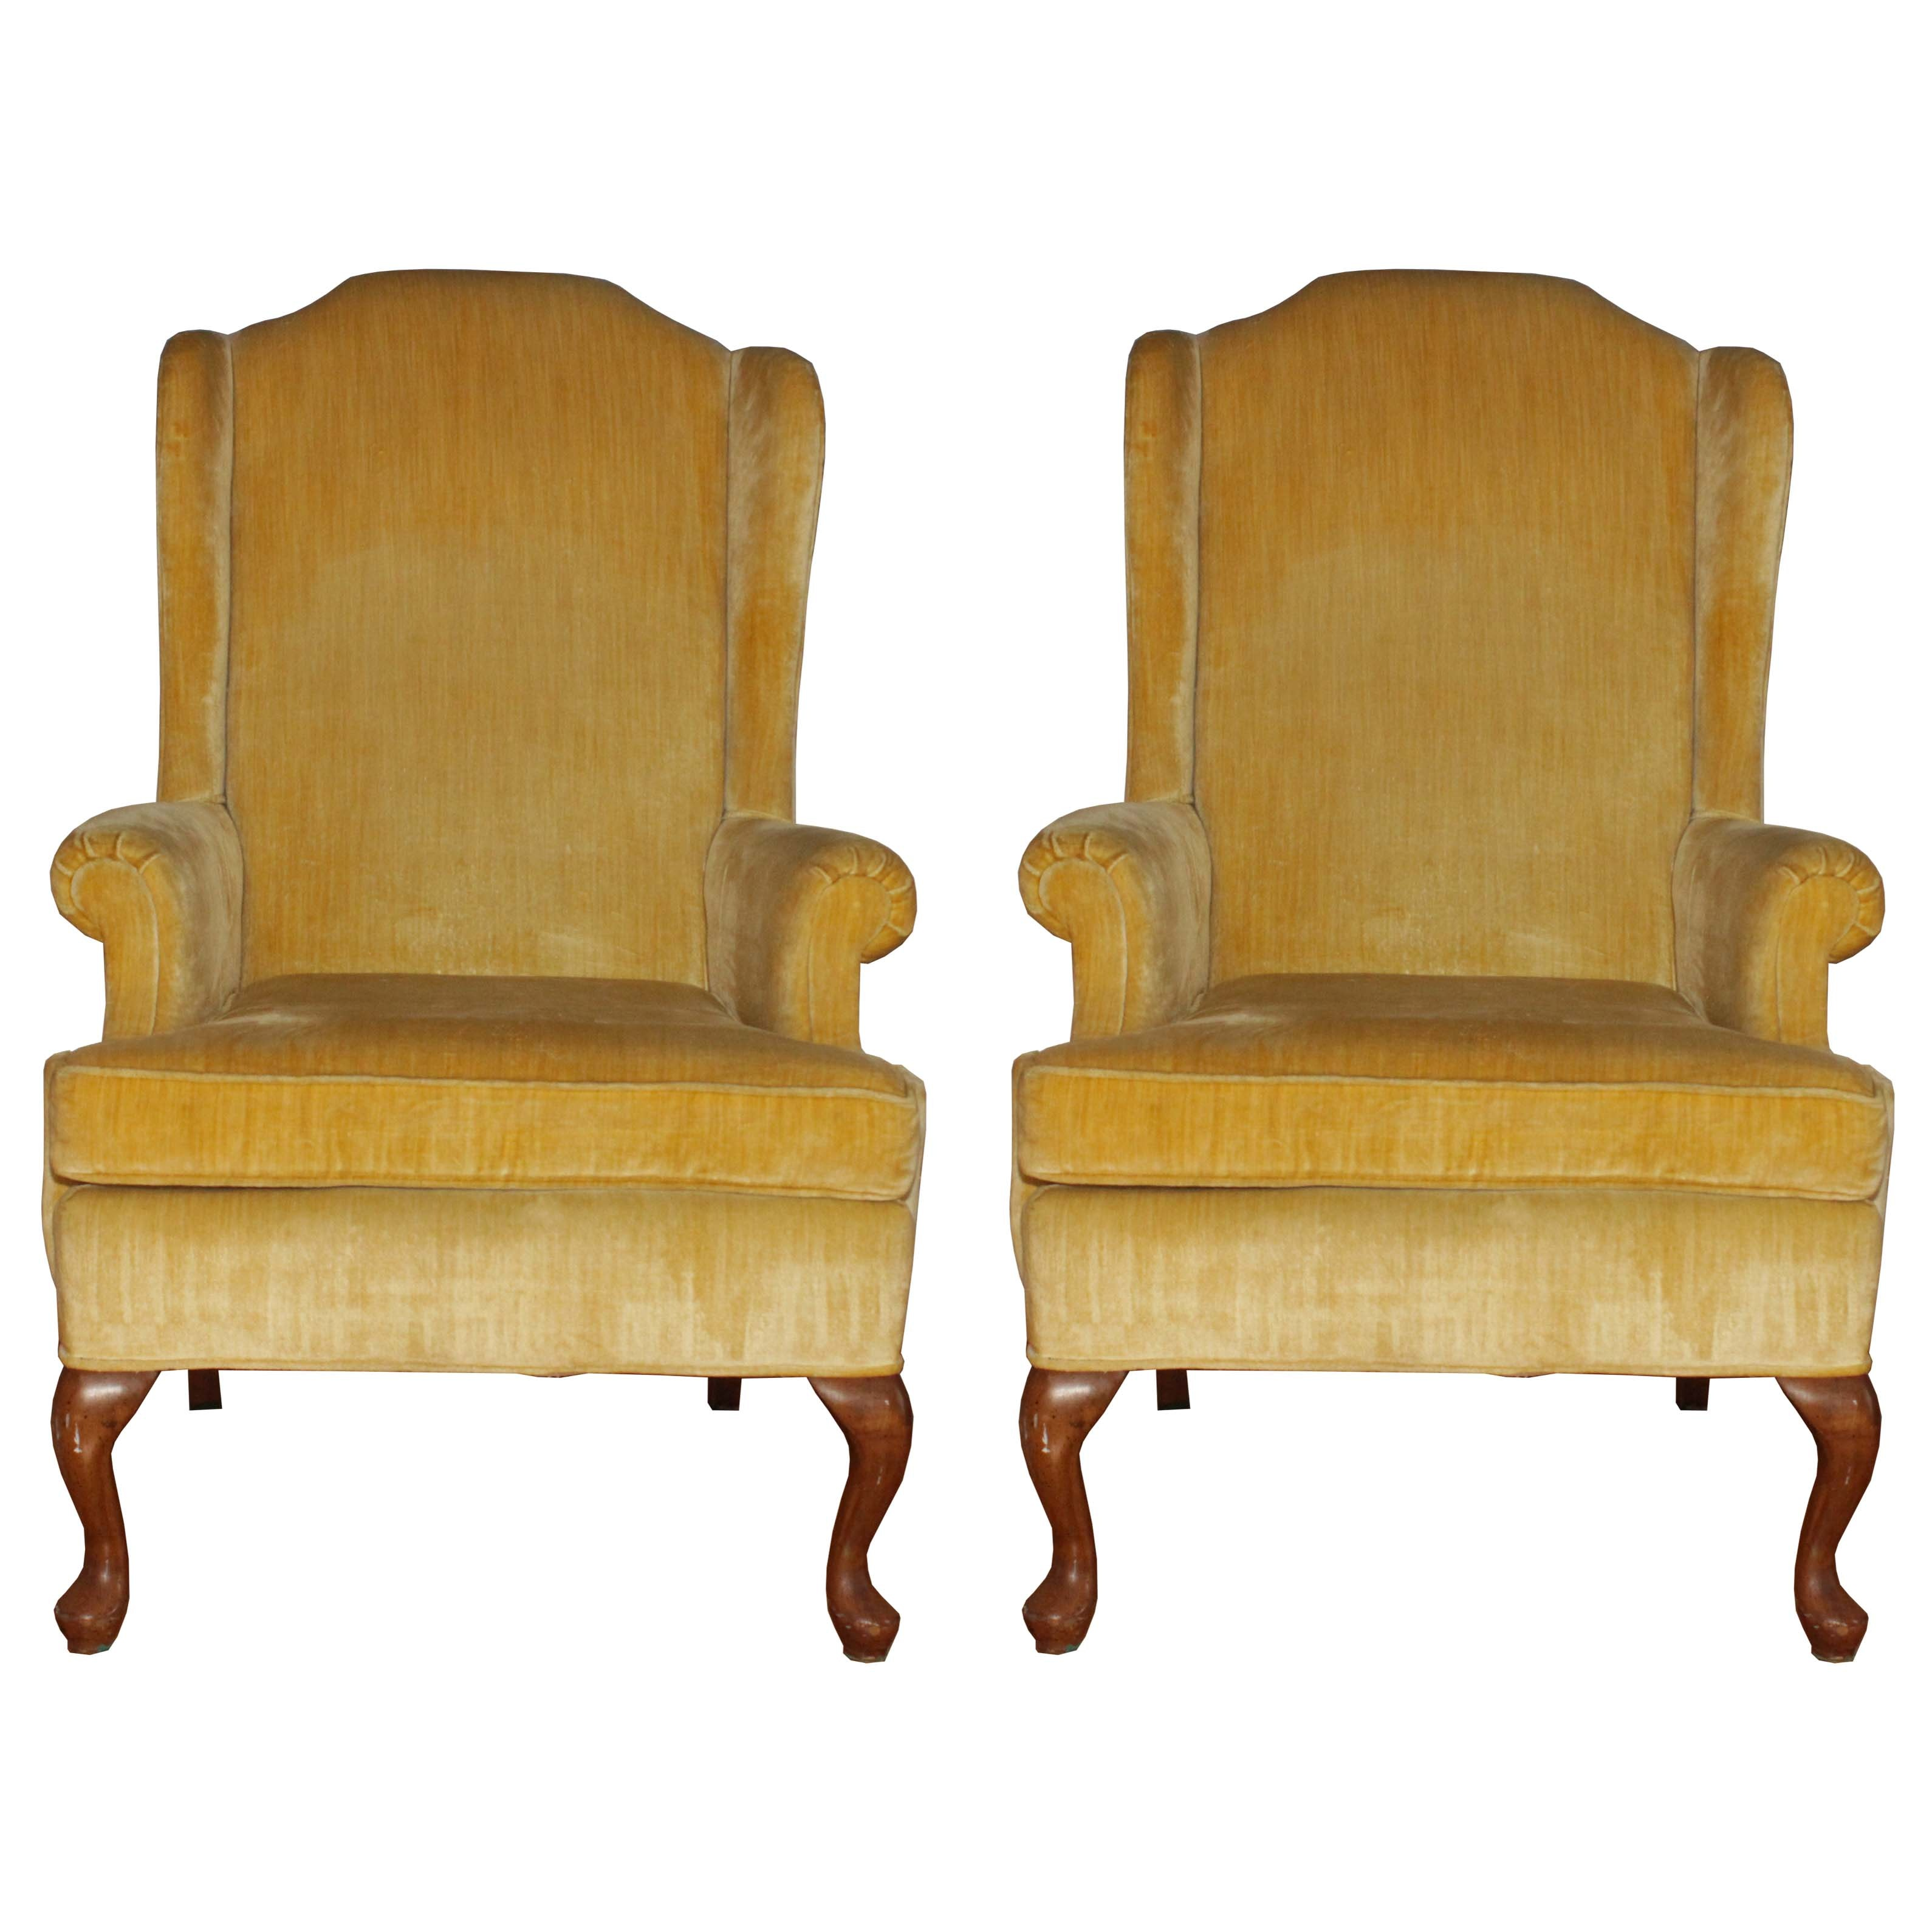 Pair of Wing Back Chairs by Suggs and Hardin